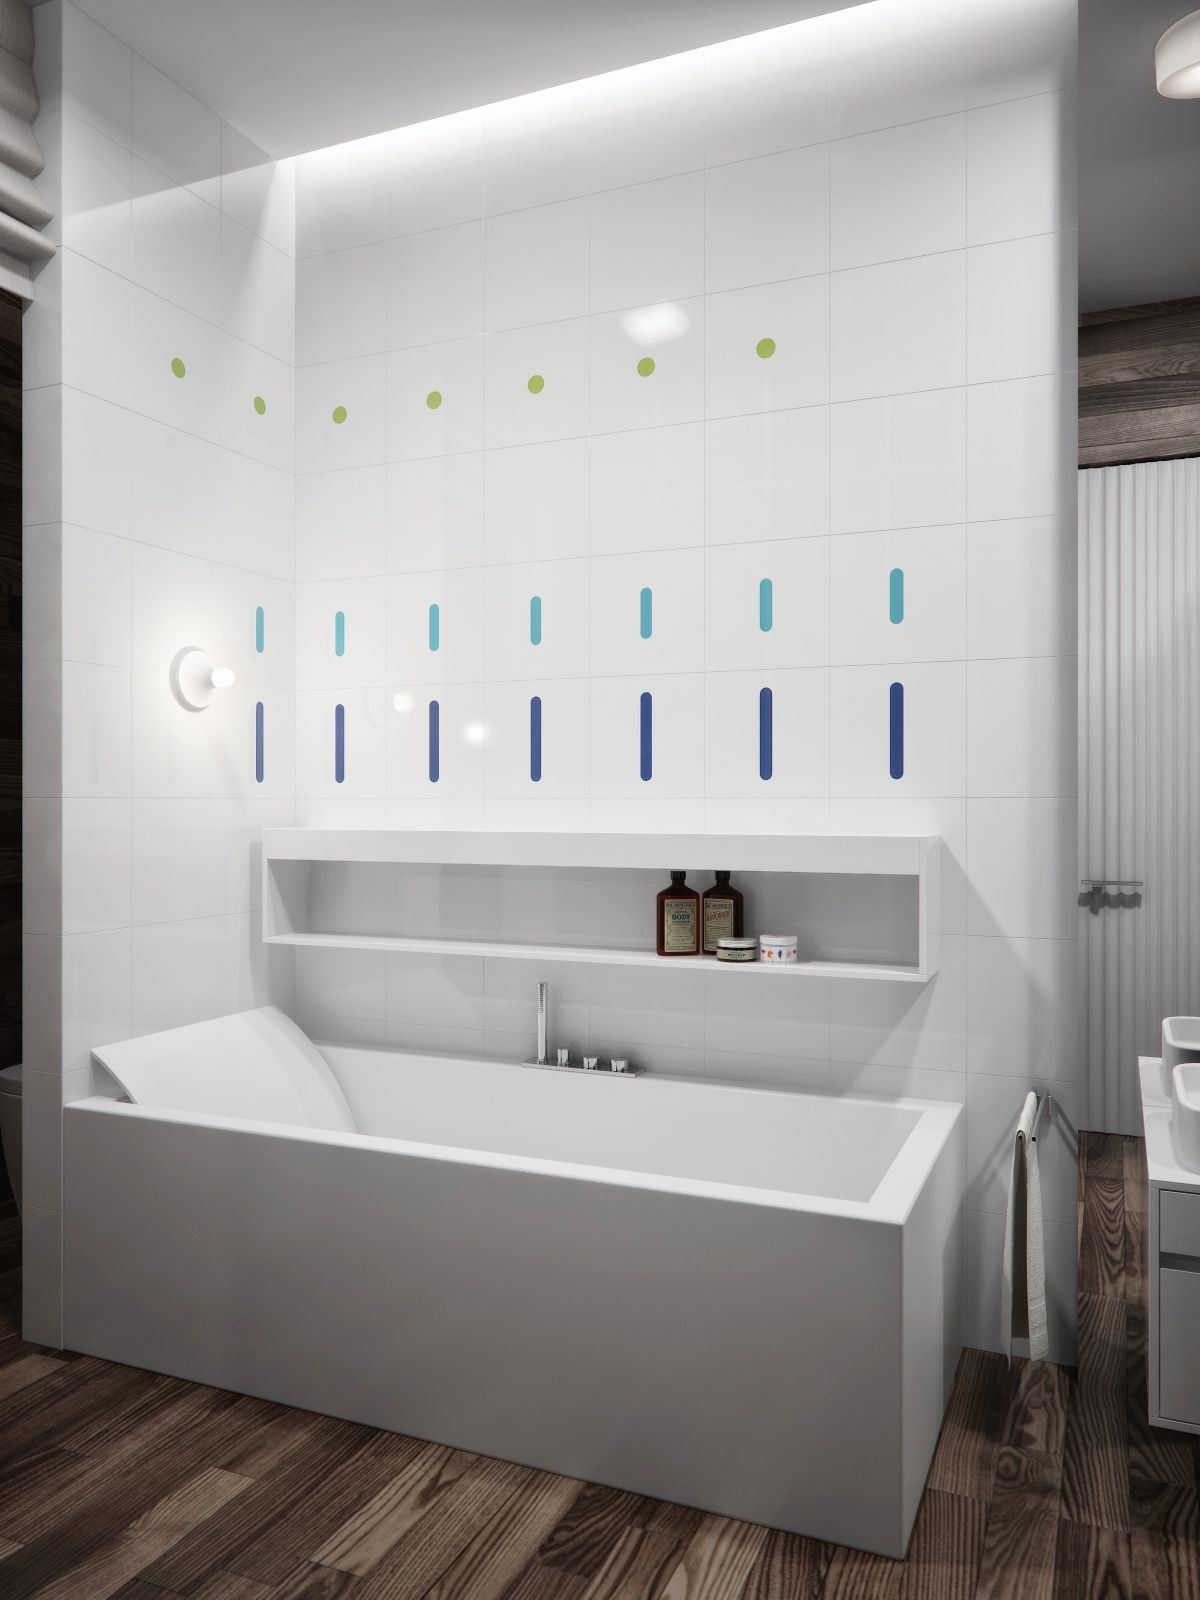 Lastest Modern White Bathroom Modern Bathroom Design White Bathrooms Bathrooms